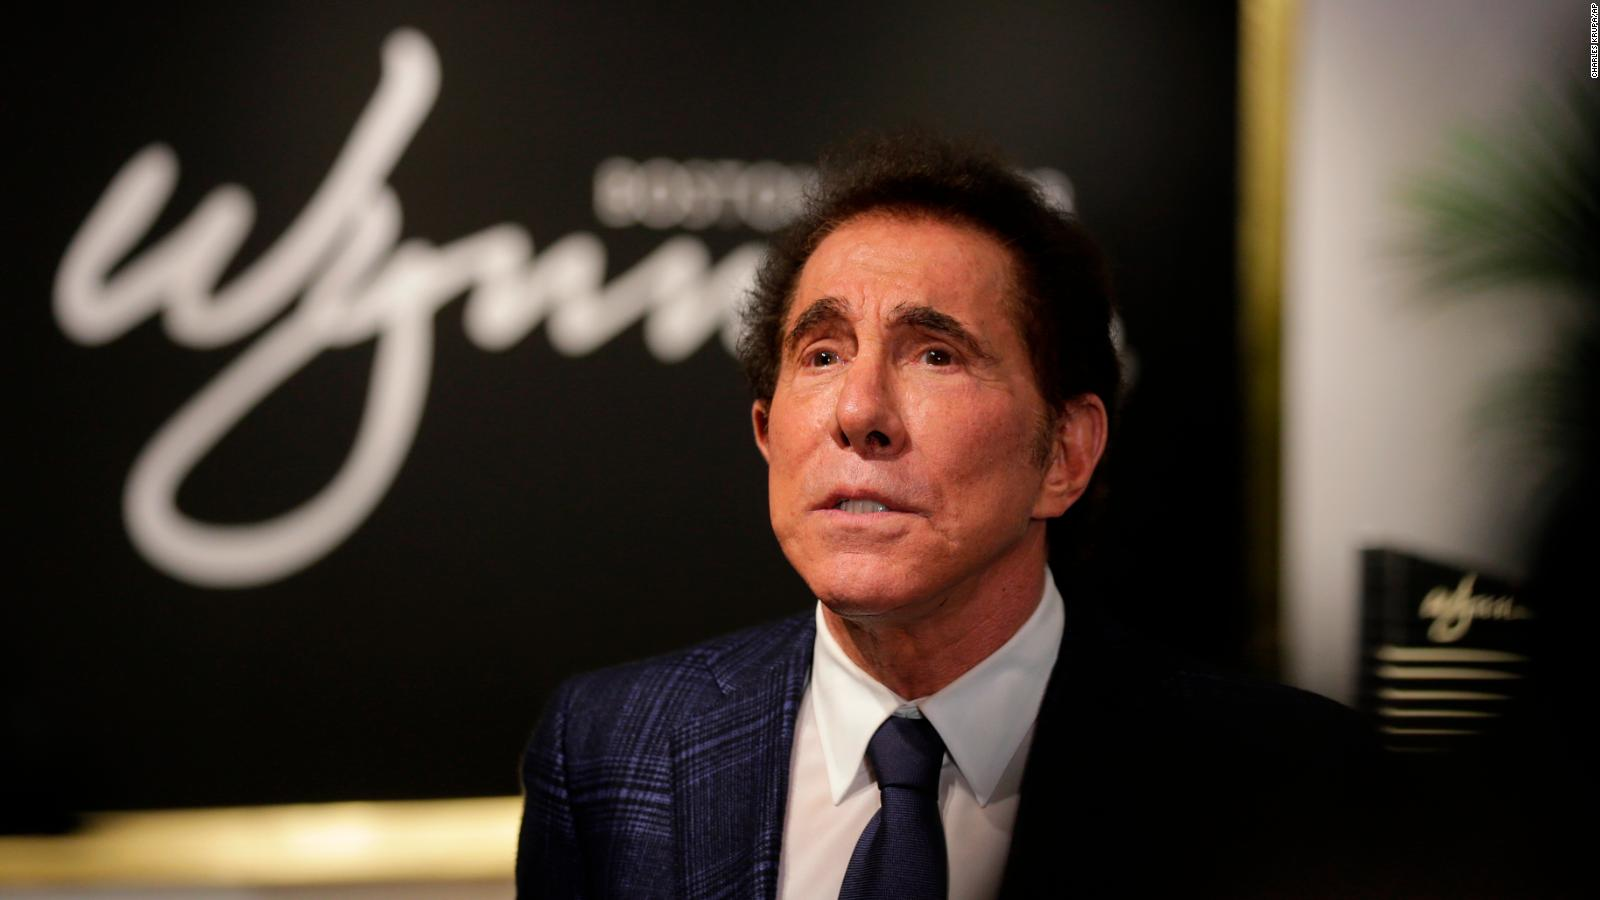 Steve Wynn lawyer accuses woman of extortion over sexual misconduct claims